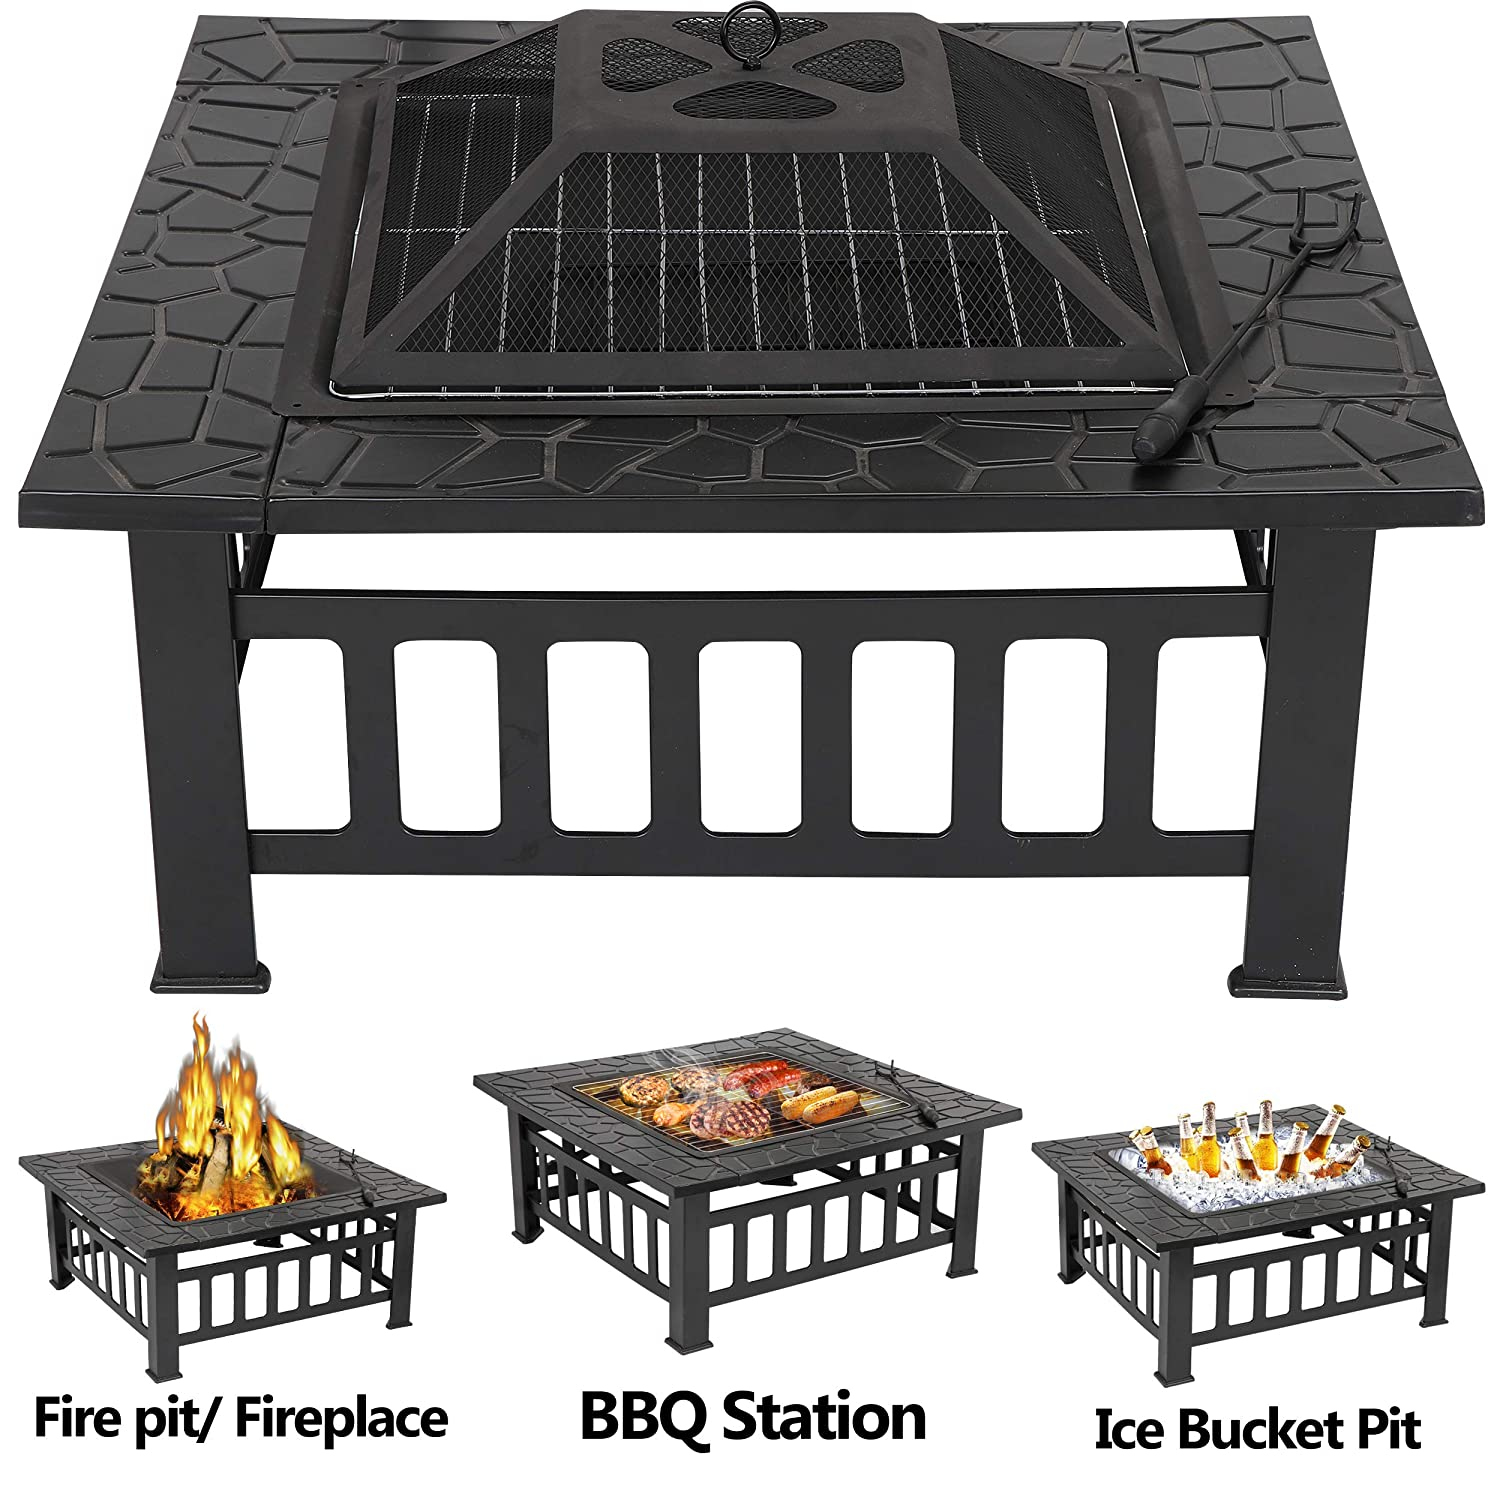 B079JSBX7P LEMY 32 inch Outdoor Square Metal Firepit Backyard Patio Garden Stove Wood Burning BBQ Fire Pit with Rain Cover, Faux-Stone Finish 91ICdq2BJPcL._SL1500_